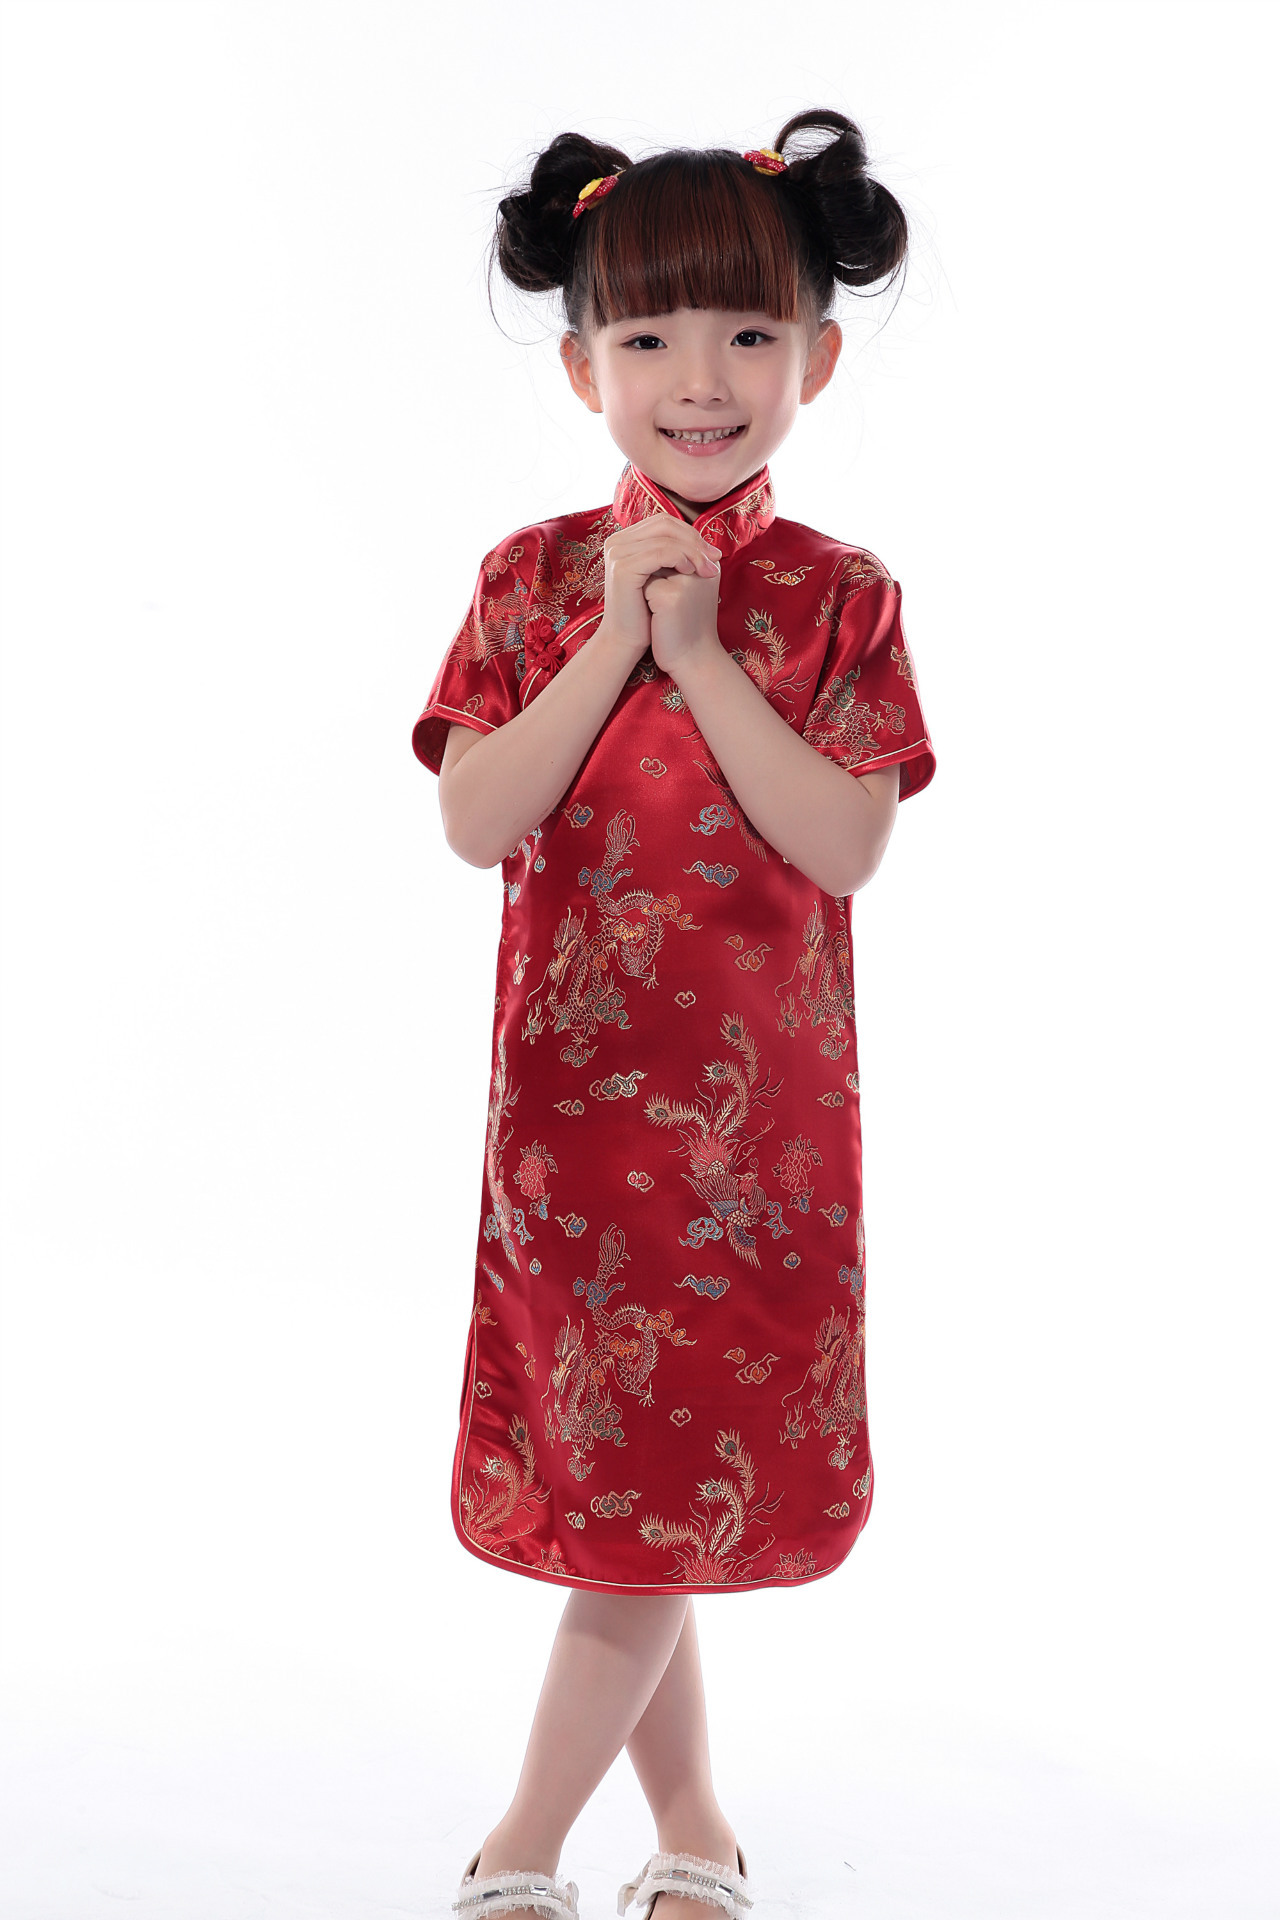 Chinese Kids Girls Dress Han Tang Dynasty Ruqun Hanfu Suit Cosplay Gown Costume. $ Buy It Now. Free Shipping. We will do our best. We will do our best to solve your problem as soon as possible. (height for CM). Chinese Han Tang Kids costume Girls .